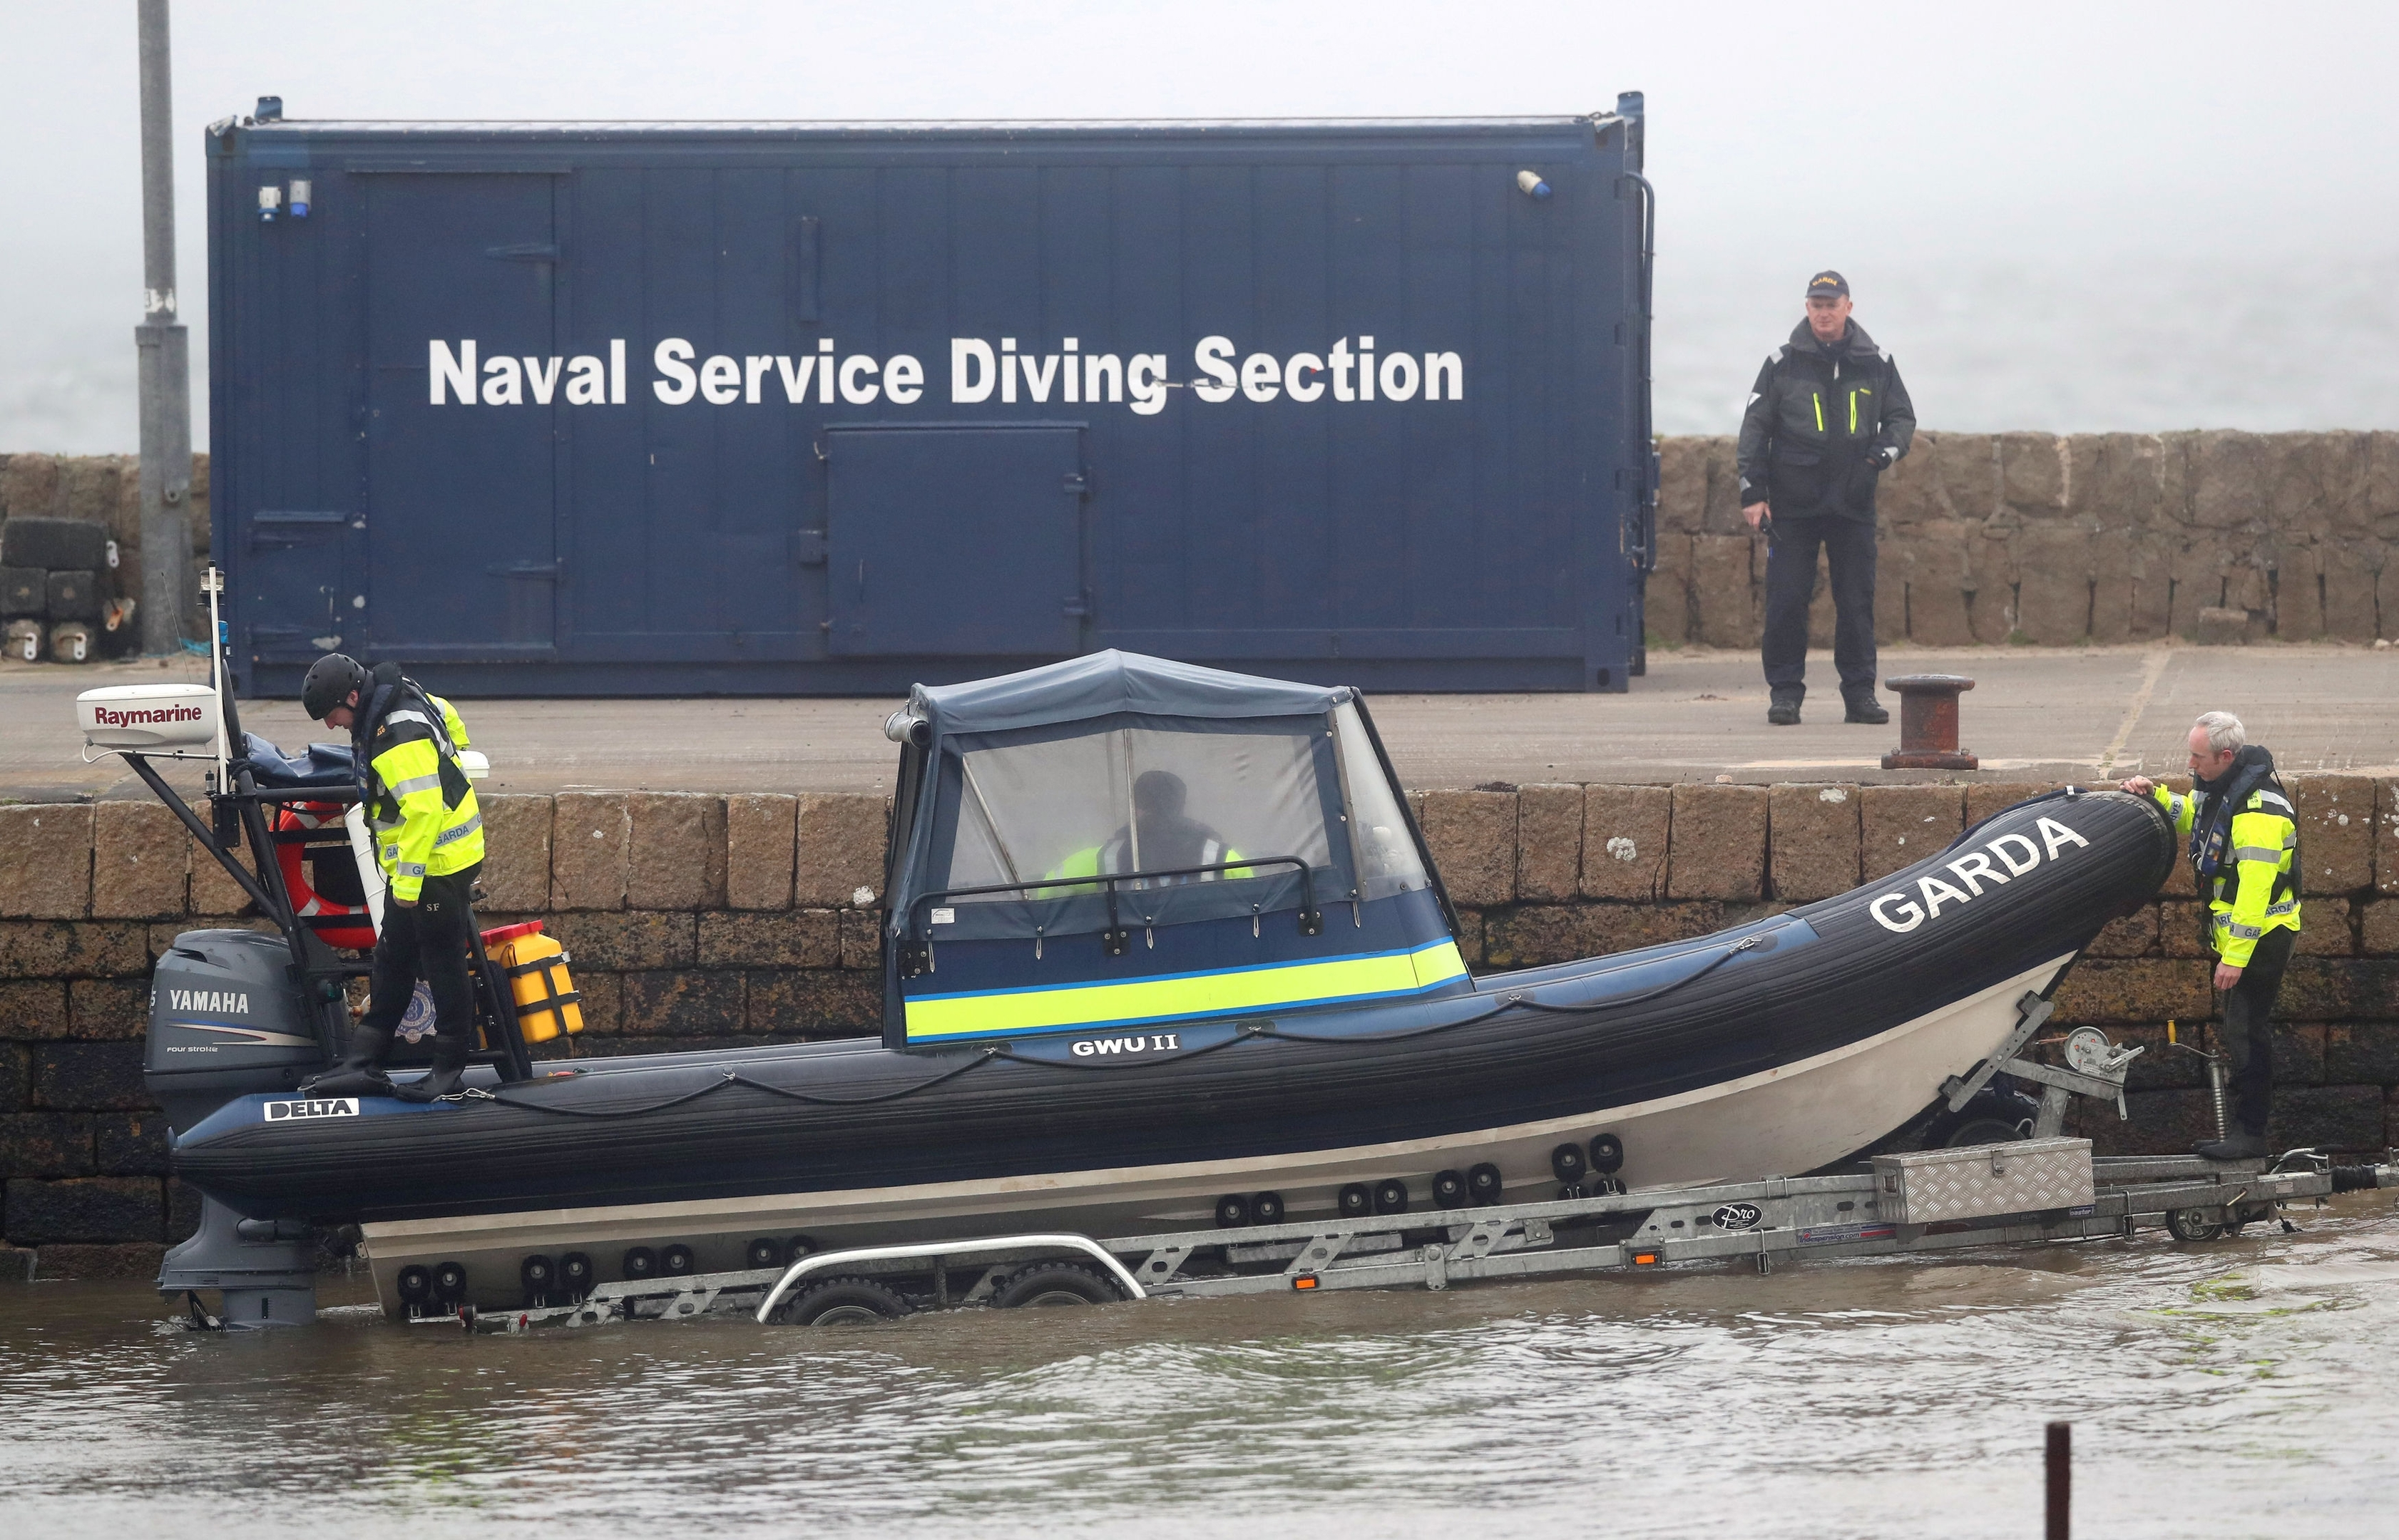 Garda water unit prepare to launch a rib in Blacksod, Co Mayo, as the search continues for an Irish Coast Guard helicopter which went missing off the west coast of Ireland in the early hours of the morning. Picture taken Wednesday